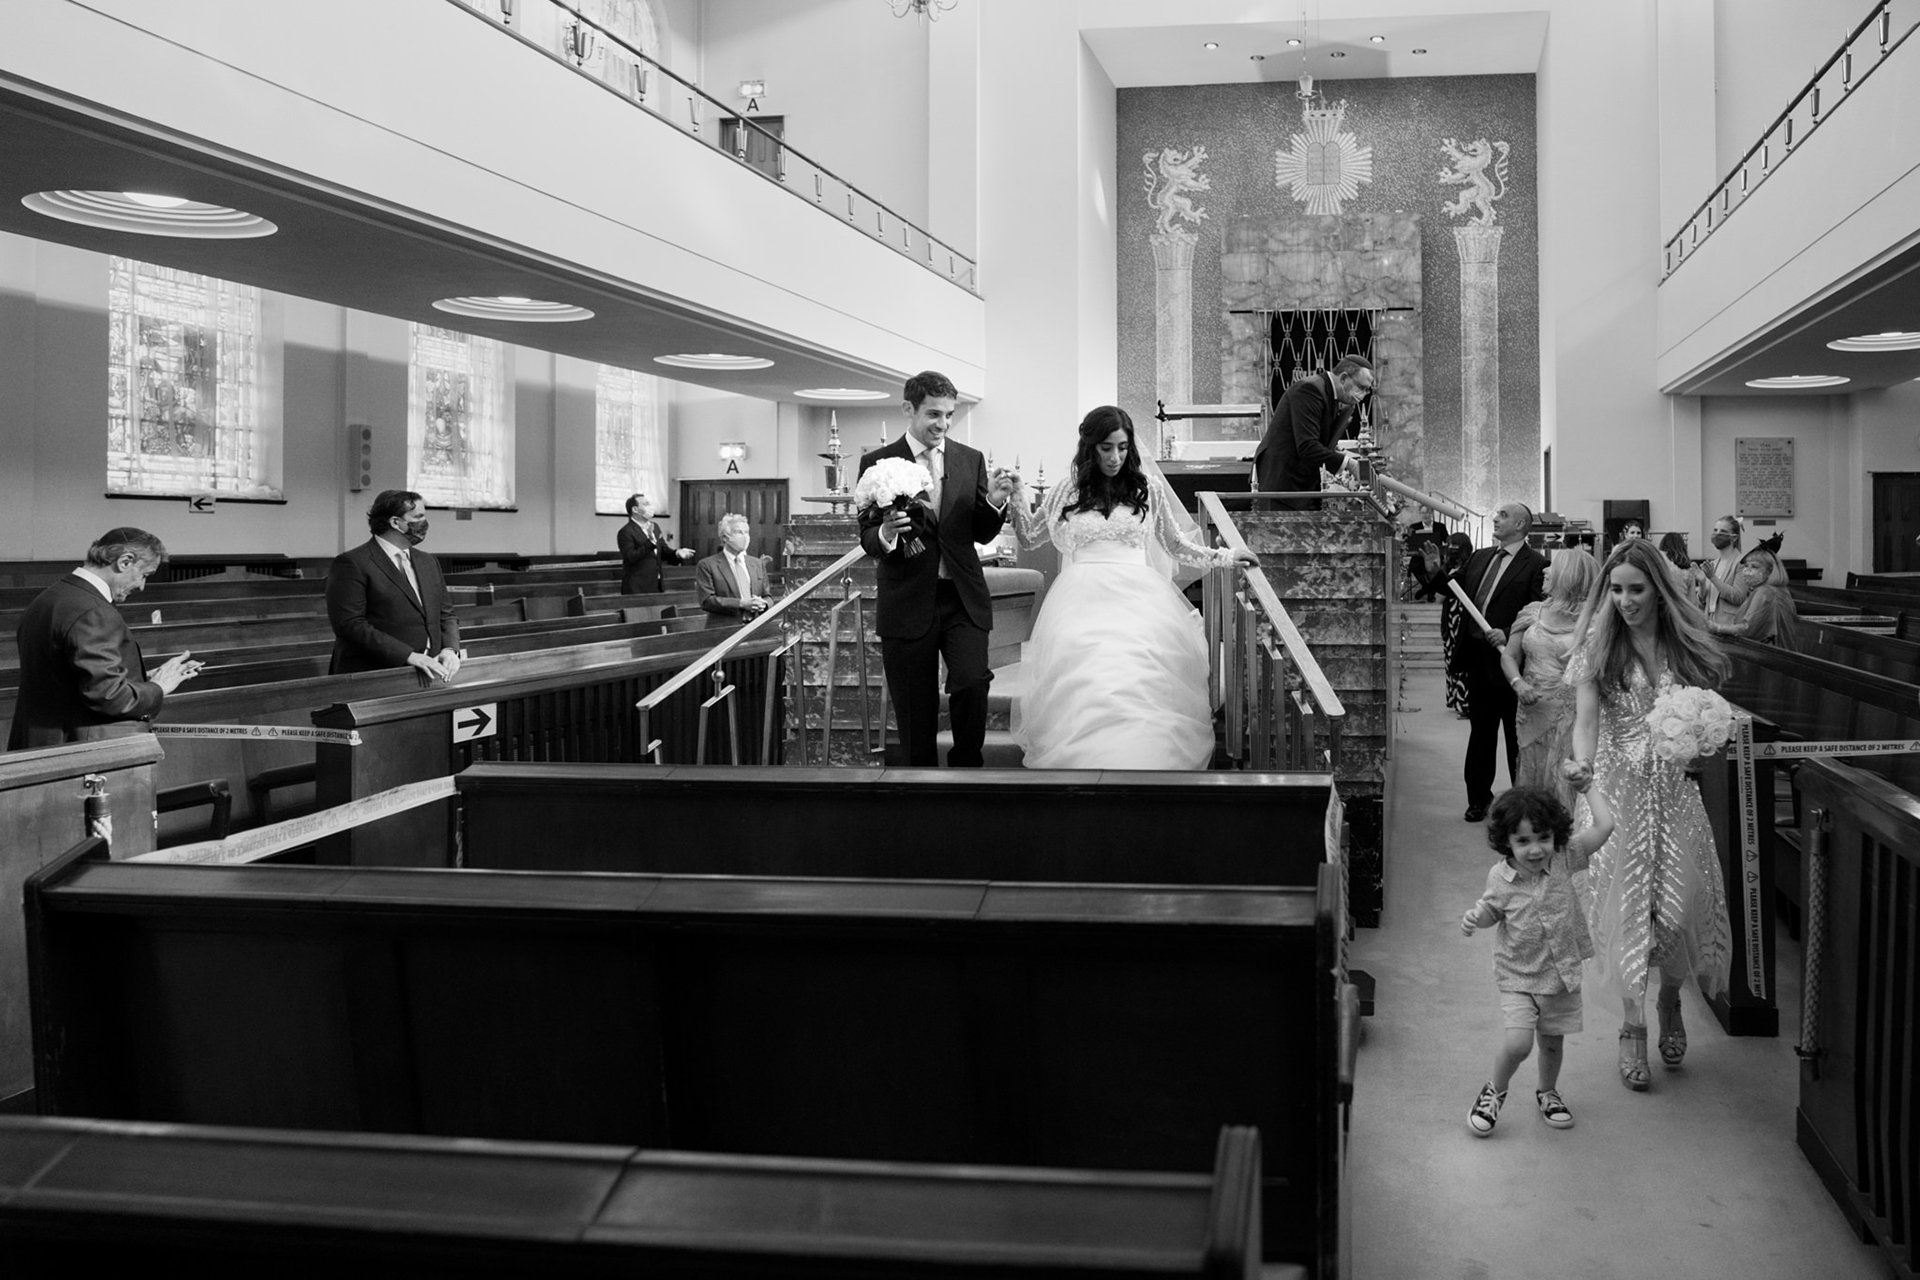 Elopement Photographer for the Central Synagogue, UK | The ceremony has concluded and the bride and groom begin their exit